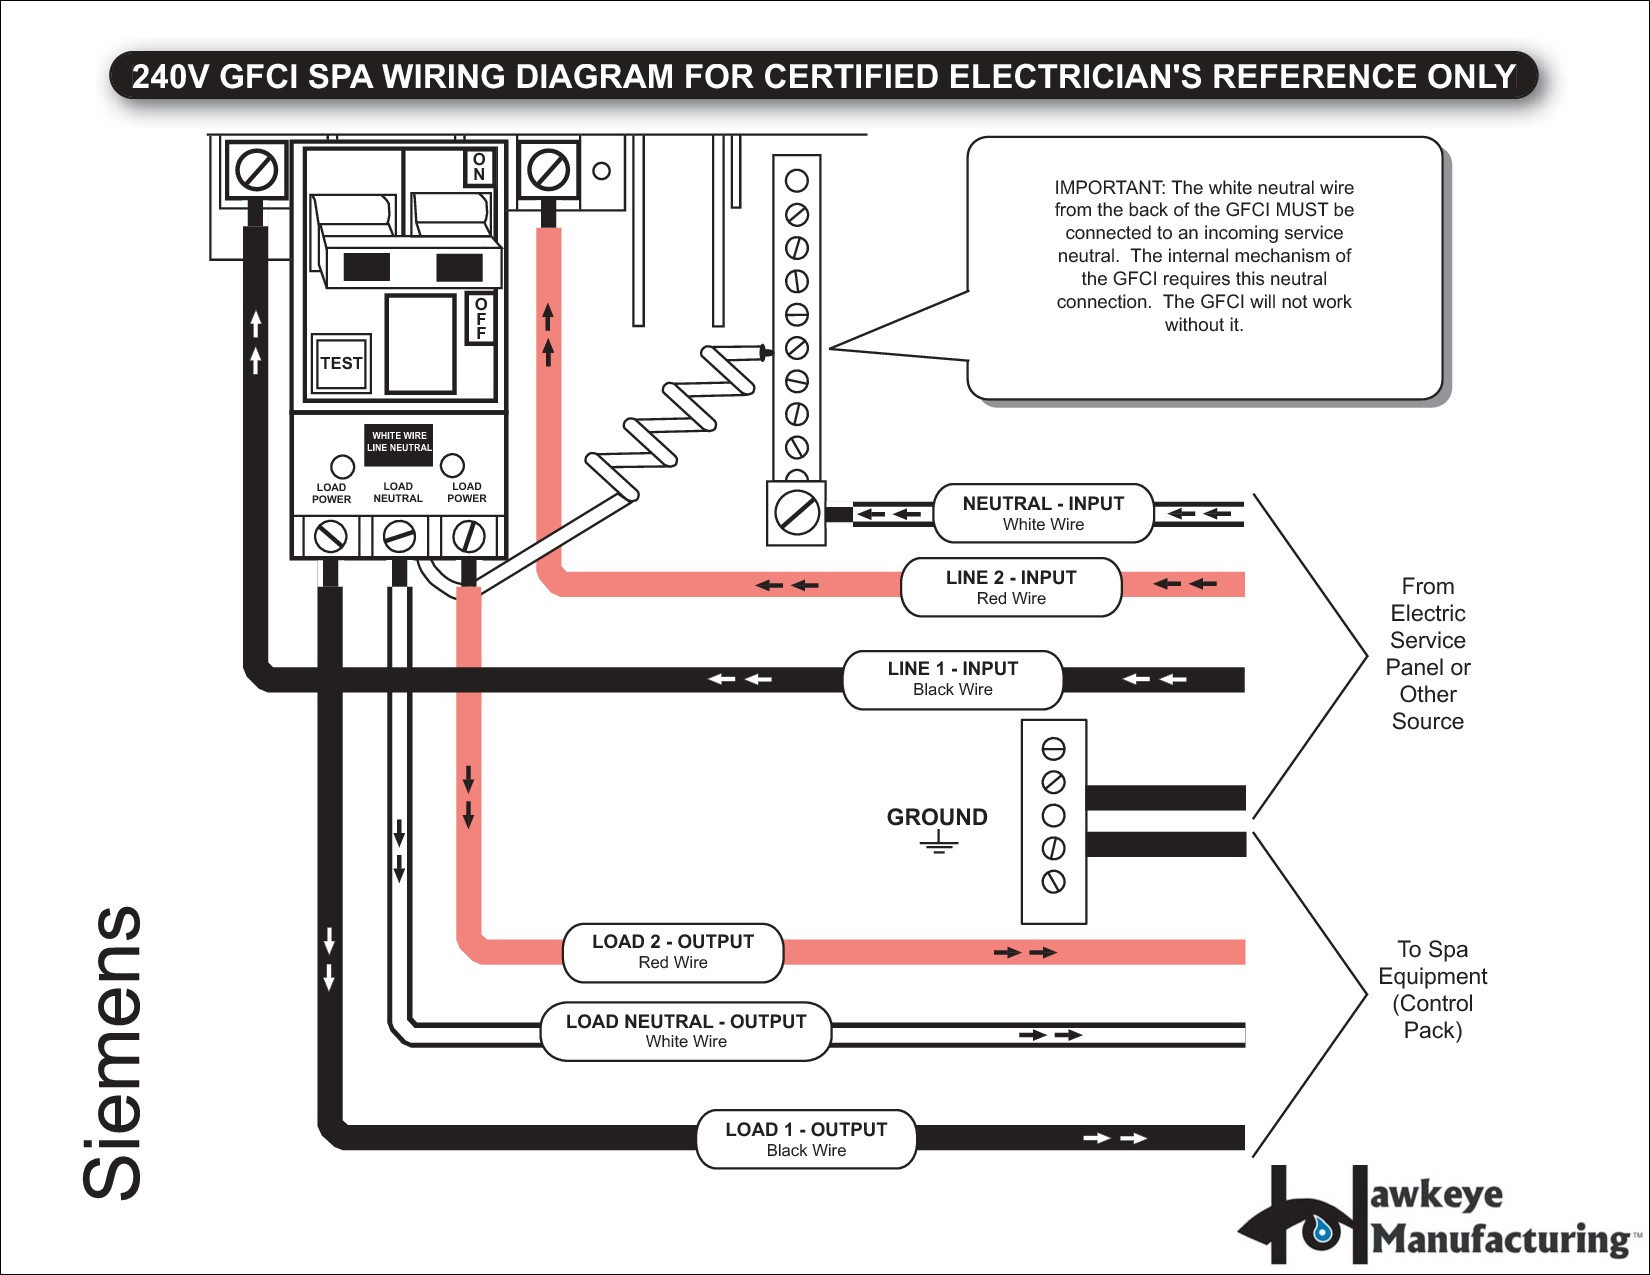 [DHAV_9290]  LG_5833] Wire Gfci Plug Free Download Wiring Diagrams Pictures Wiring Free  Diagram | Wiring Diagram For Gfci Schematic |  | Tivexi Epete Erek Rdona Capem Mohammedshrine Librar Wiring 101